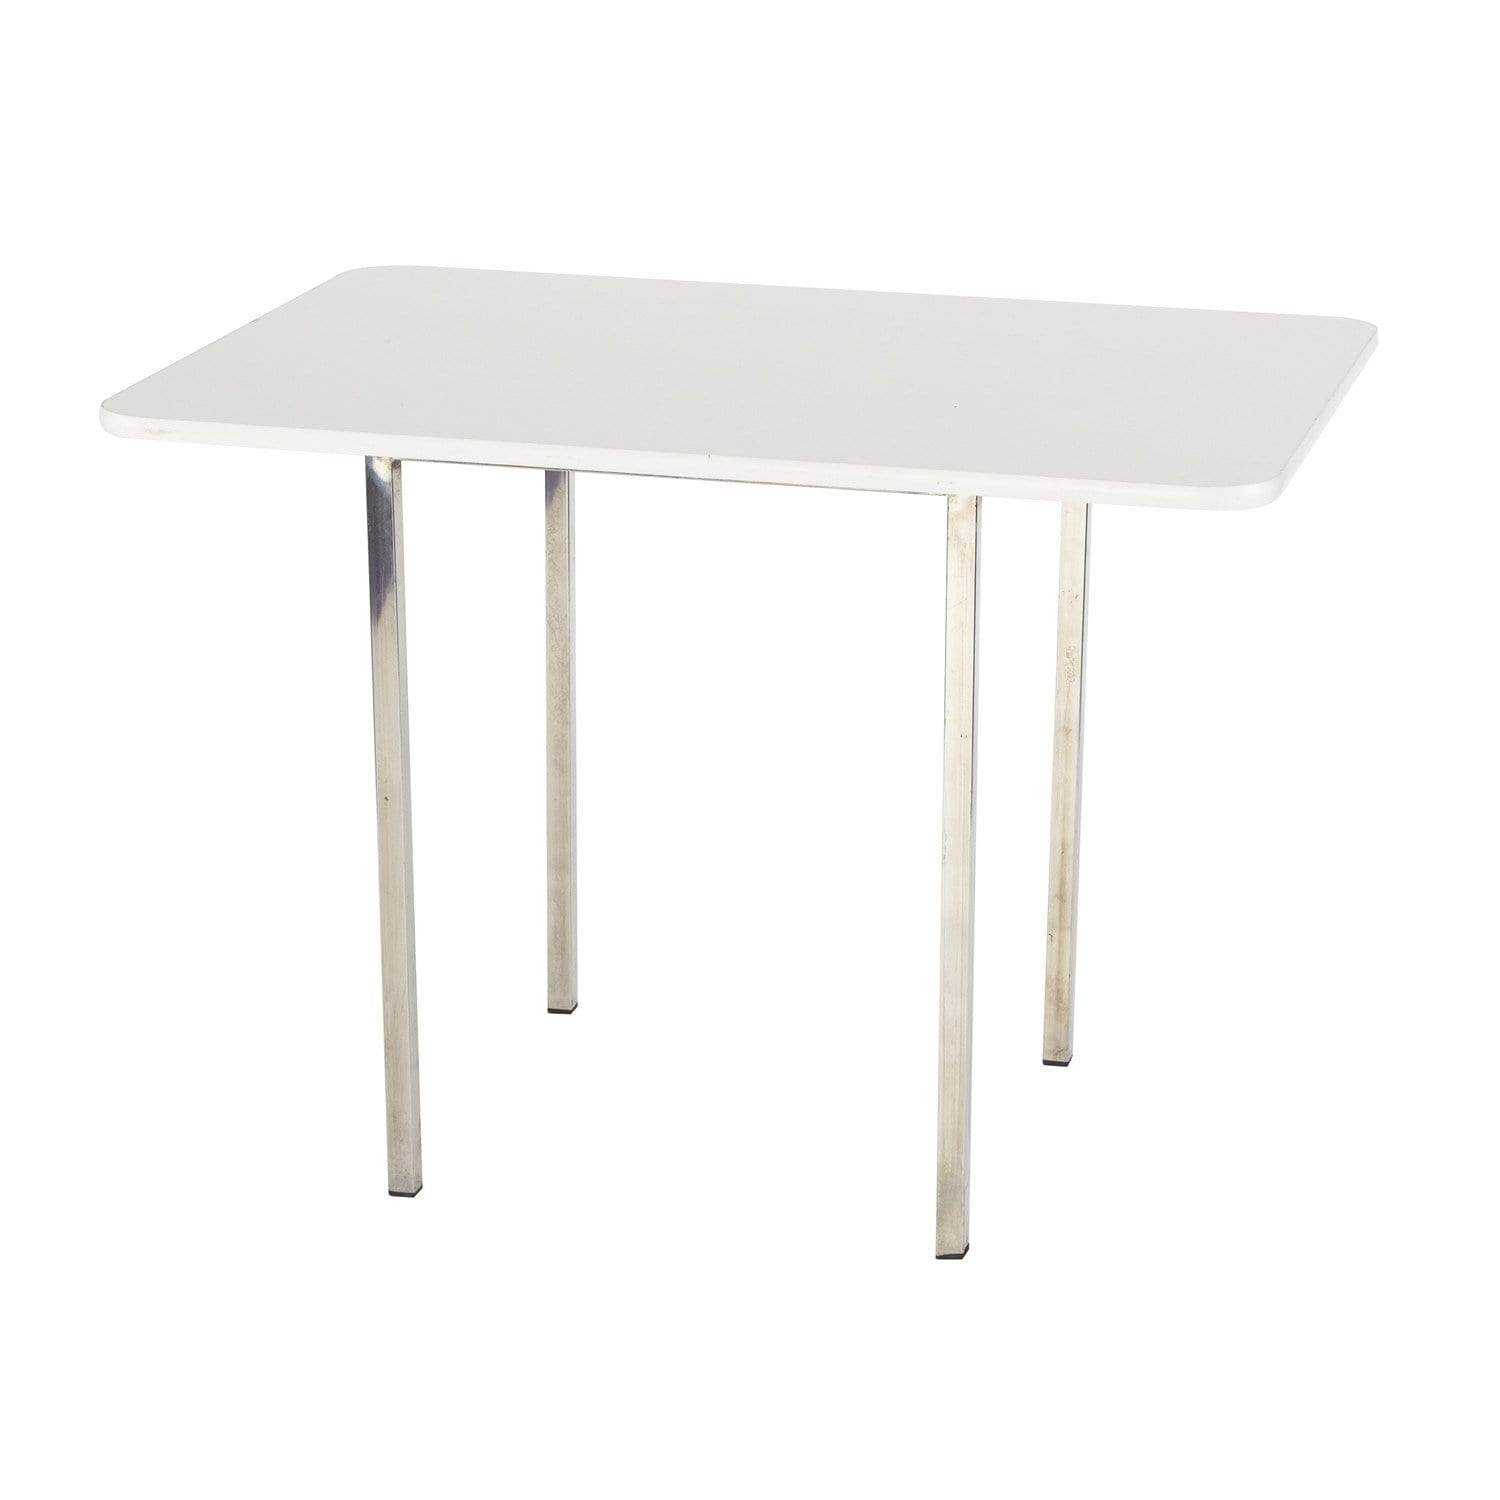 Medium Standard Table